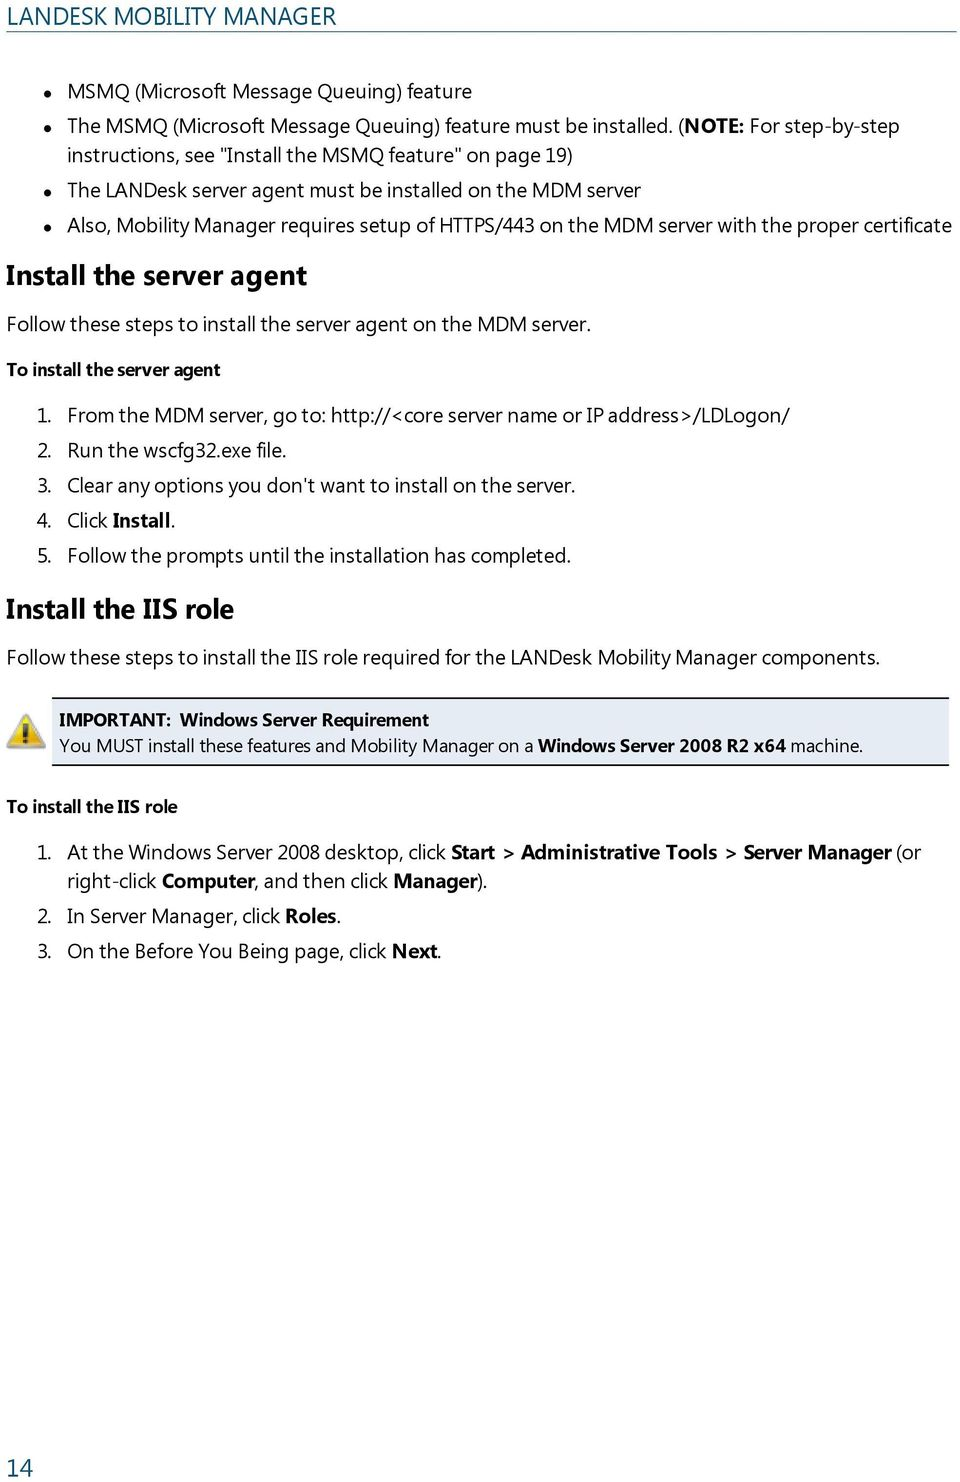 MDM server with the proper certificate Install the server agent Follow these steps to install the server agent on the MDM server. To install the server agent 1.